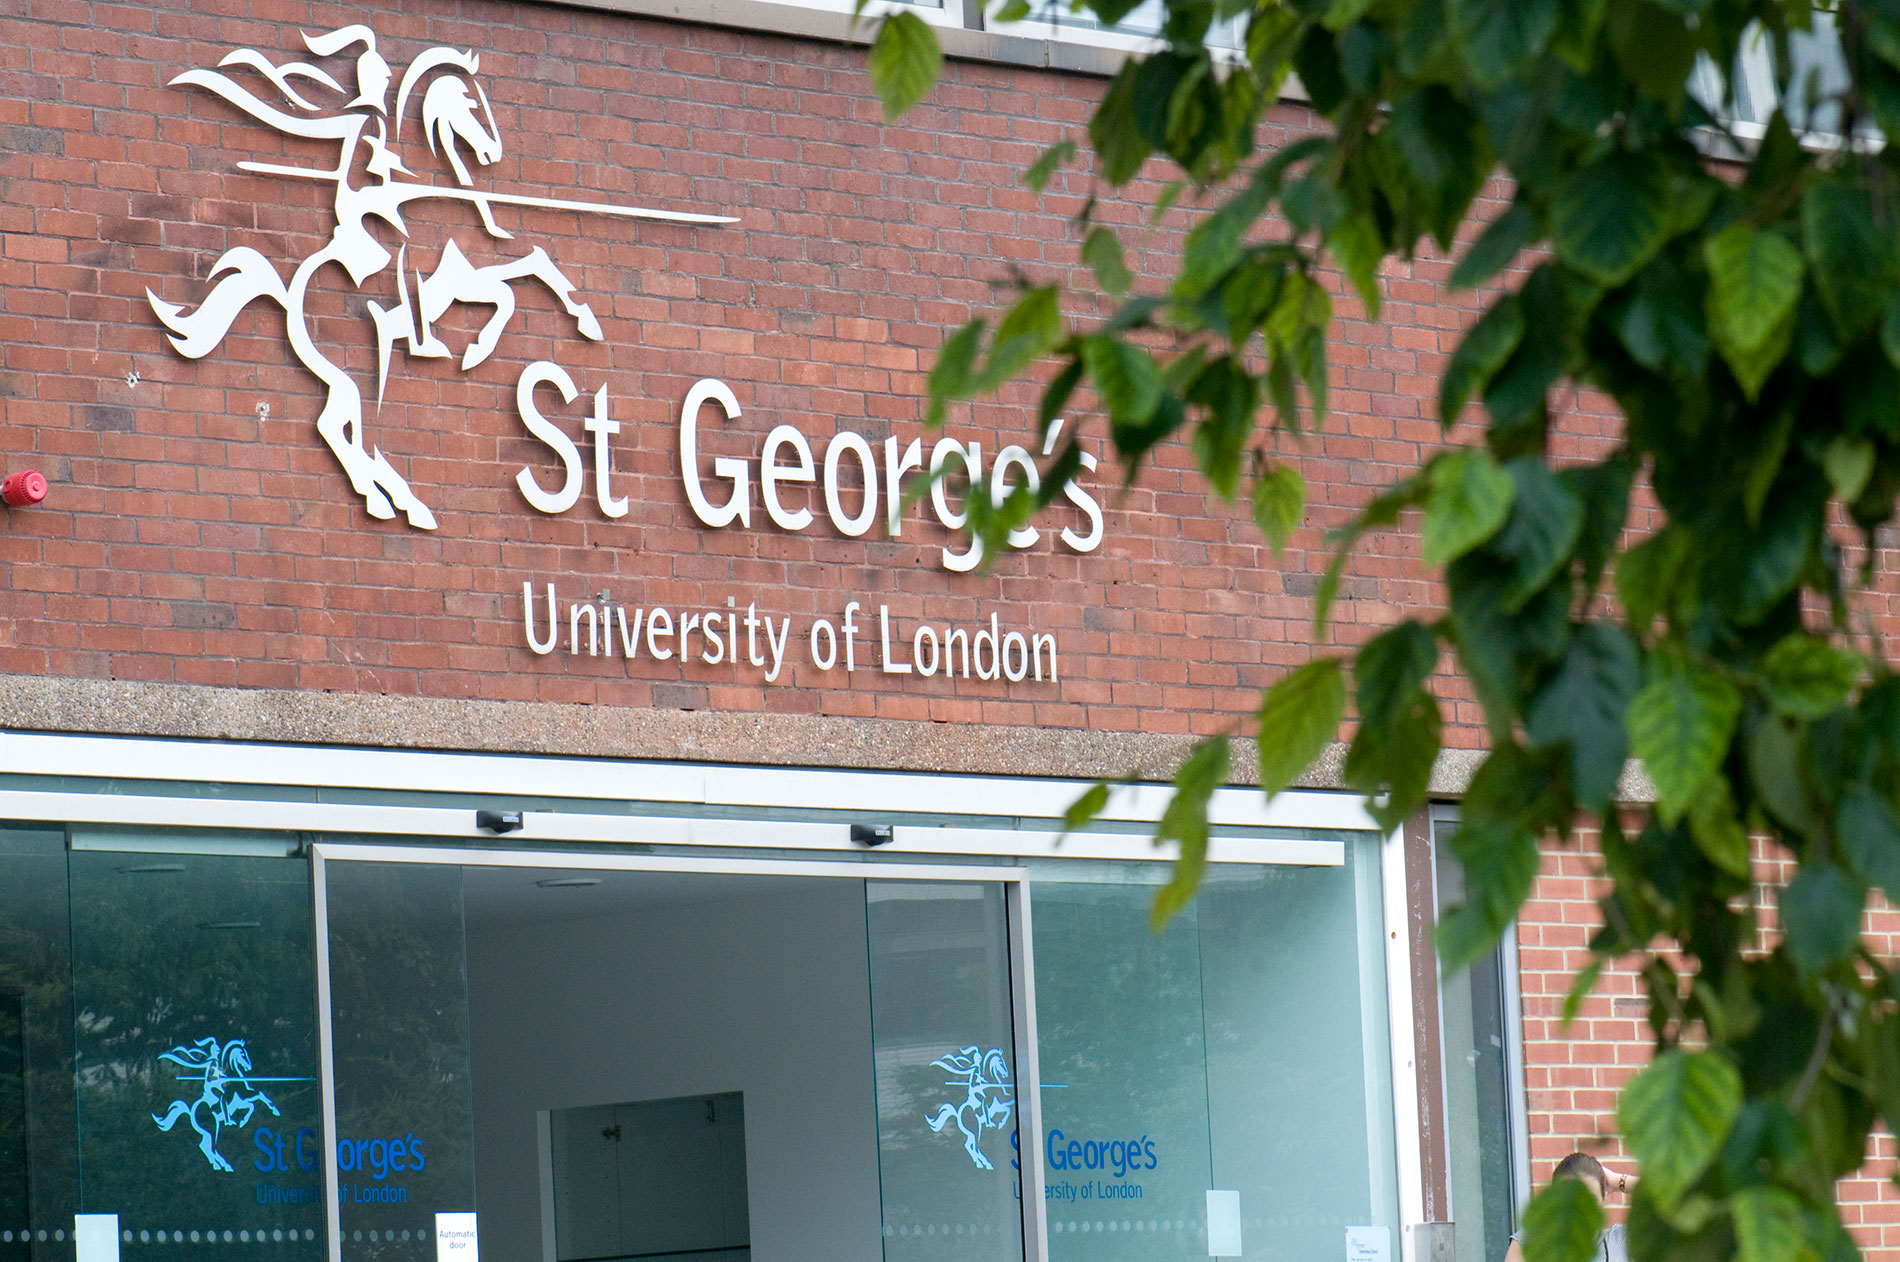 St George's, University of London building